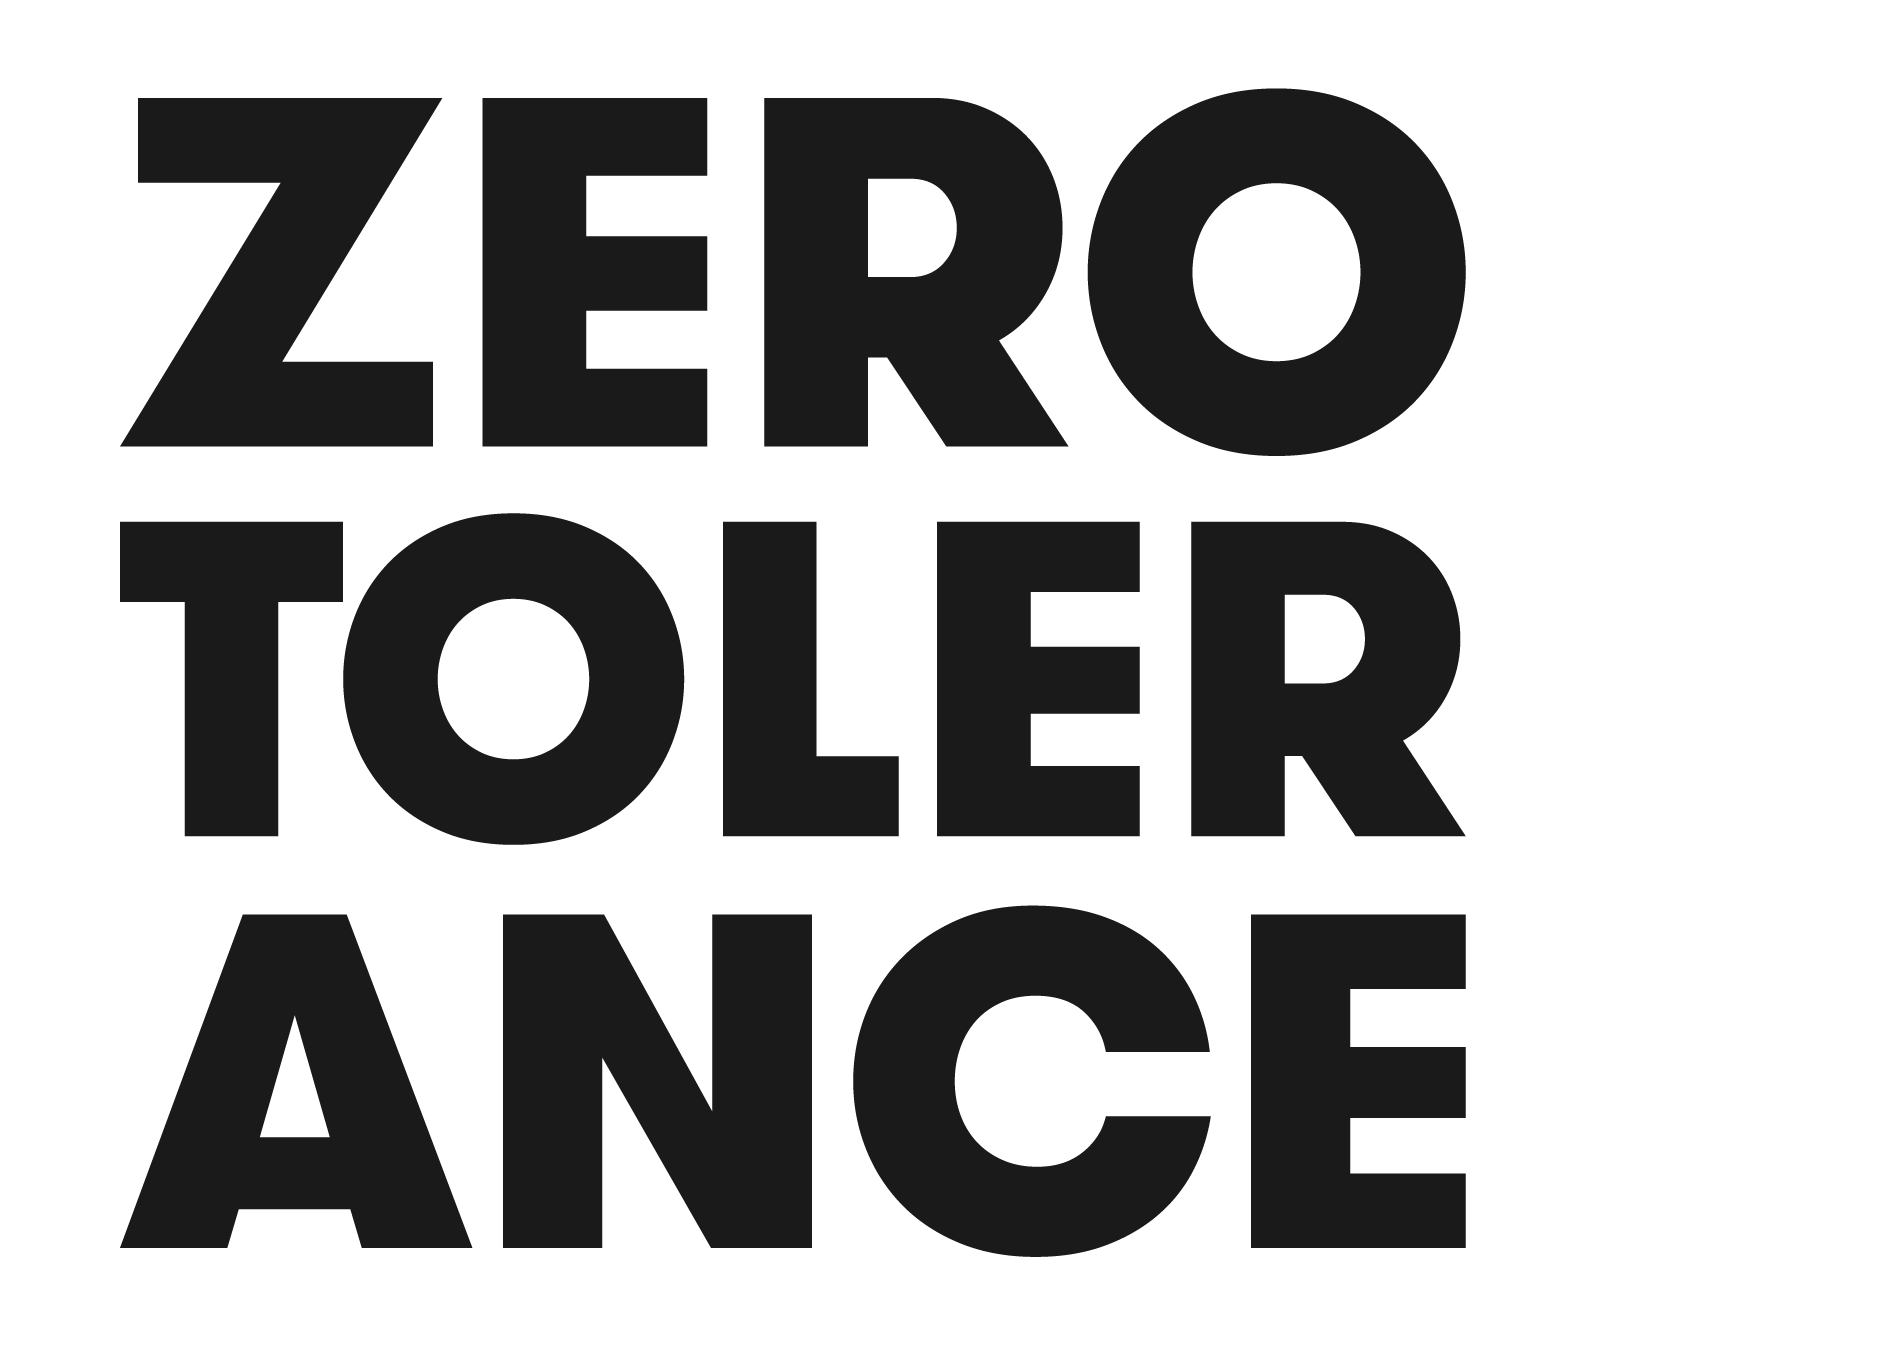 Zero Tolerance campaign nominated for NUS Award